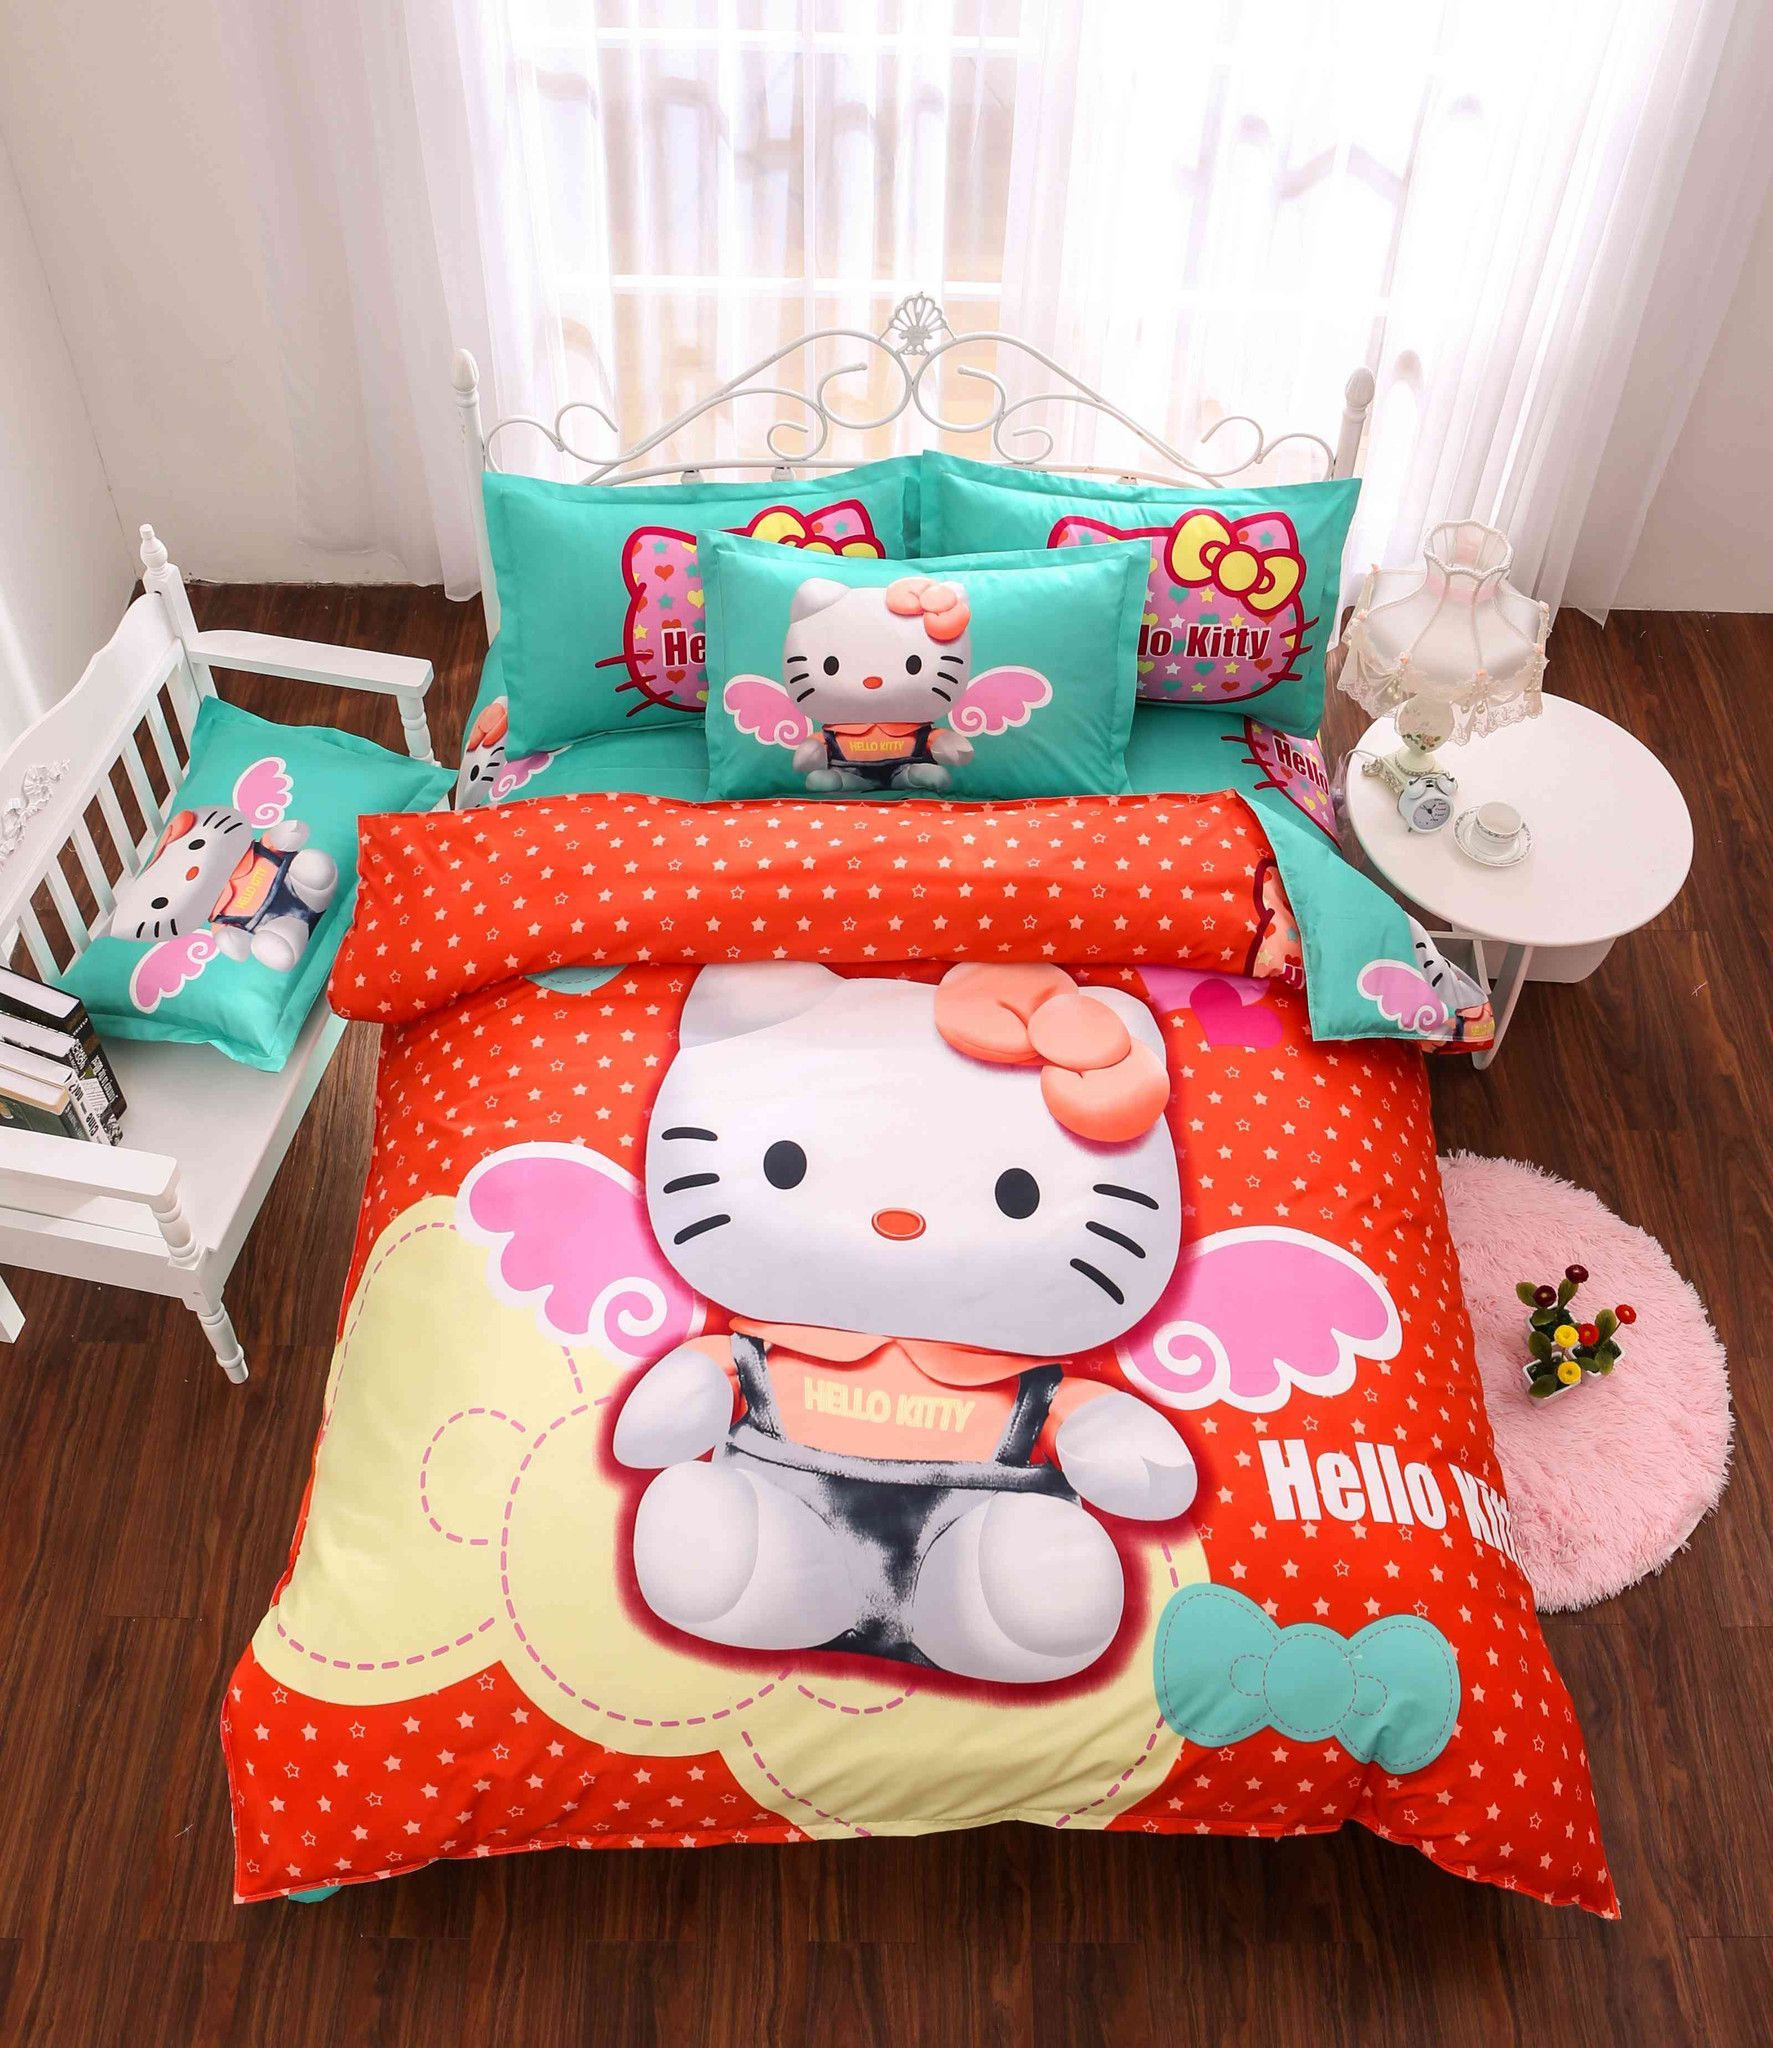 Brand Name Cara Carle Filling None Type Duvet Cover Set Without Comforter Grade Quality Material Polyester Cotton Pattern Printed Style Cartoon